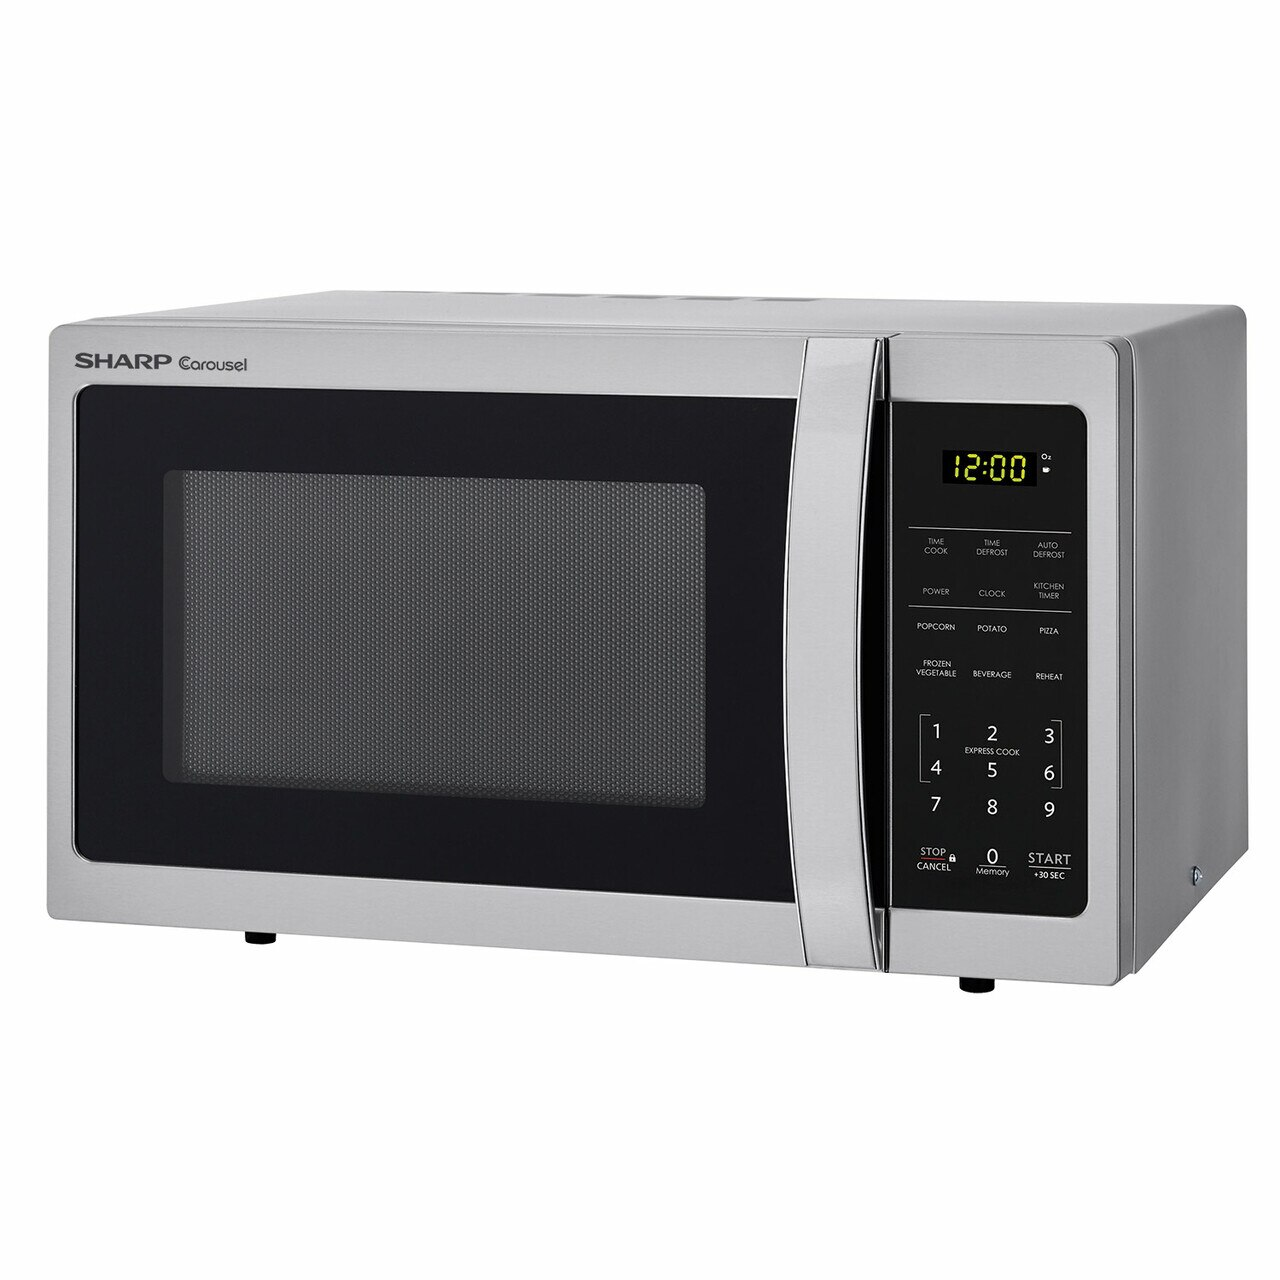 0.7 cu. ft. Sharp Stainless Steel Countertop Microwave (SMC0711BS) – left side view